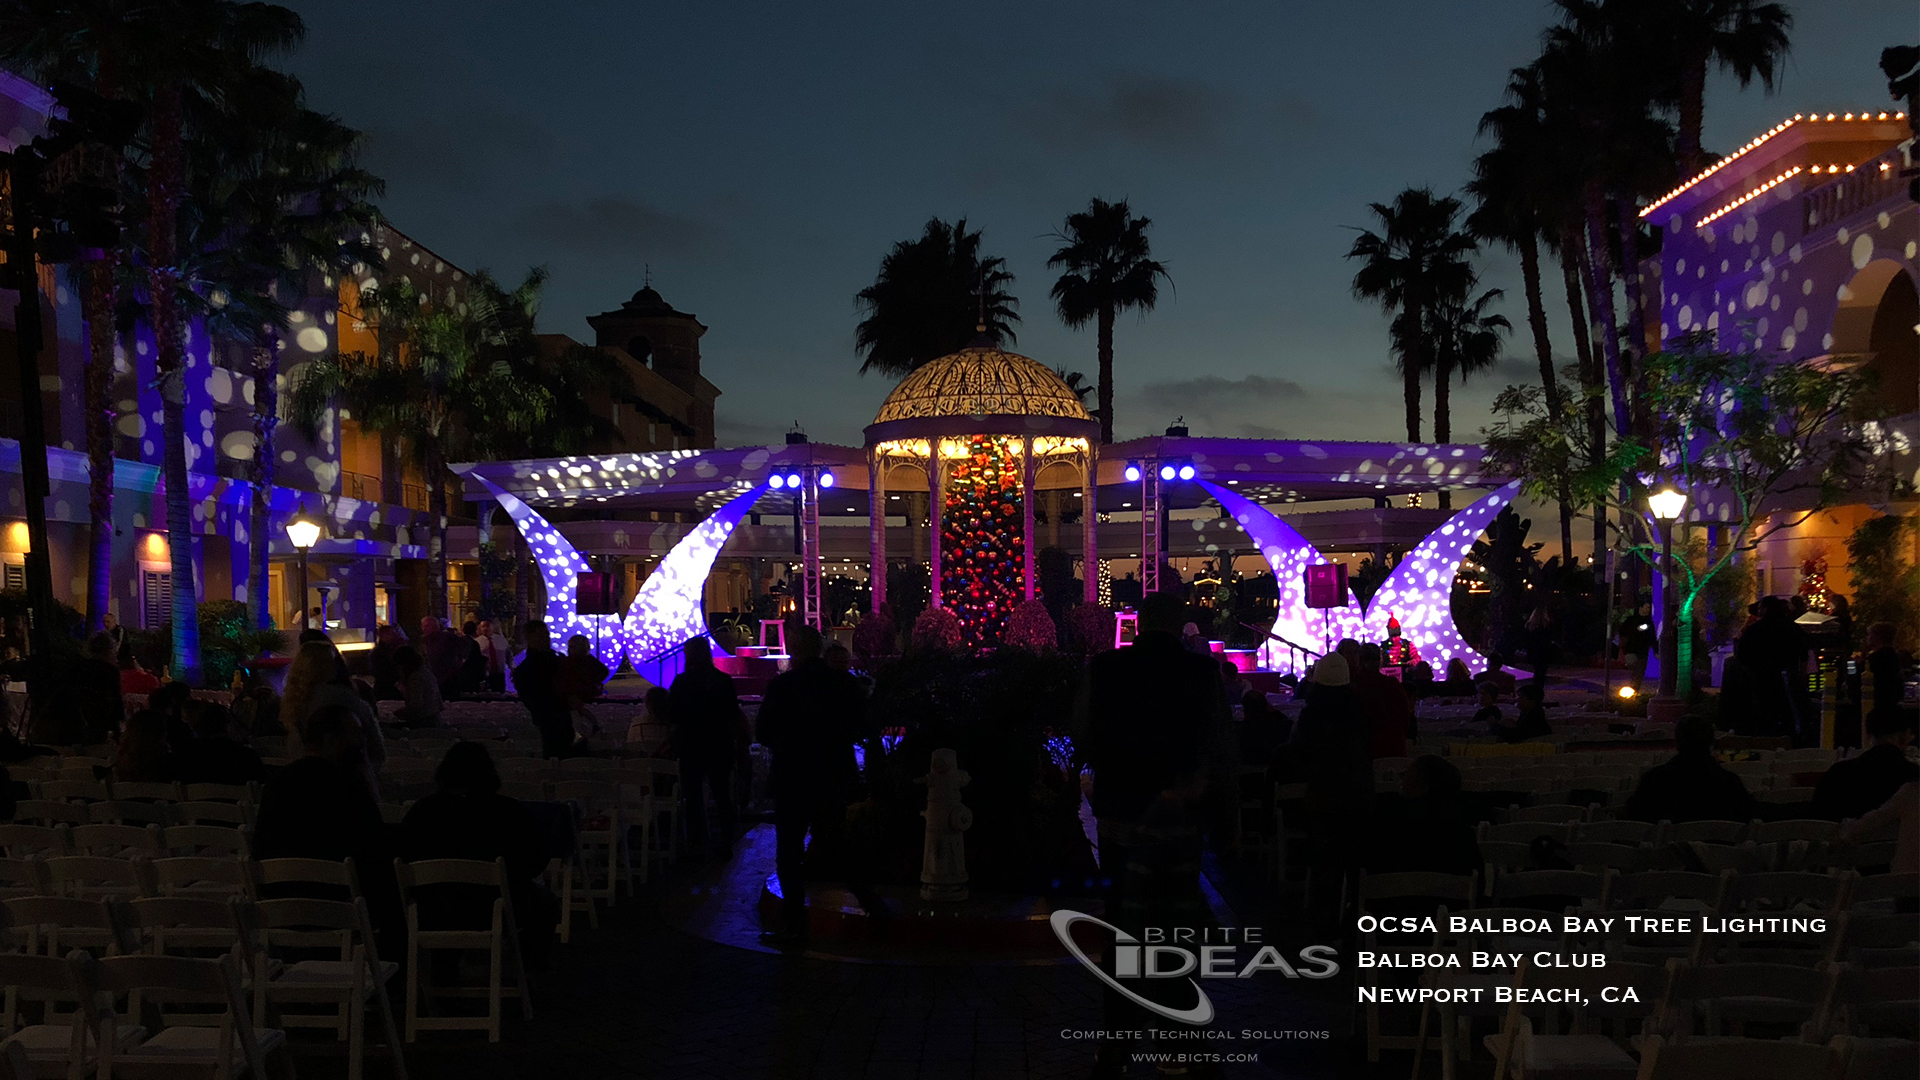 Balboa Bay Tree Lighting_2.jpg